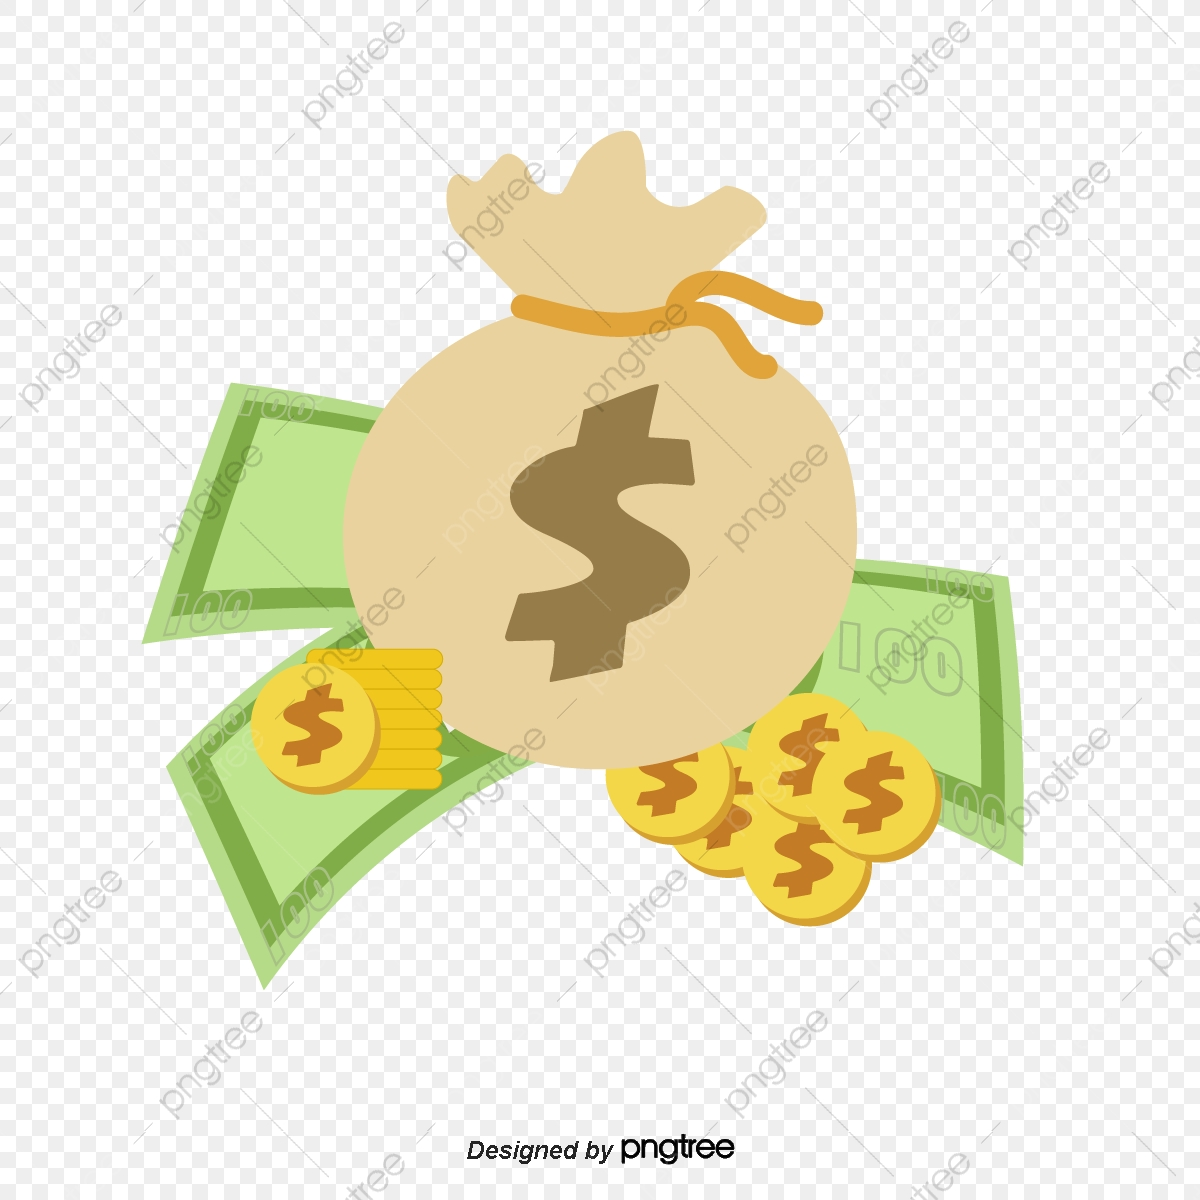 Dollars clipart dollar bag. A of the png